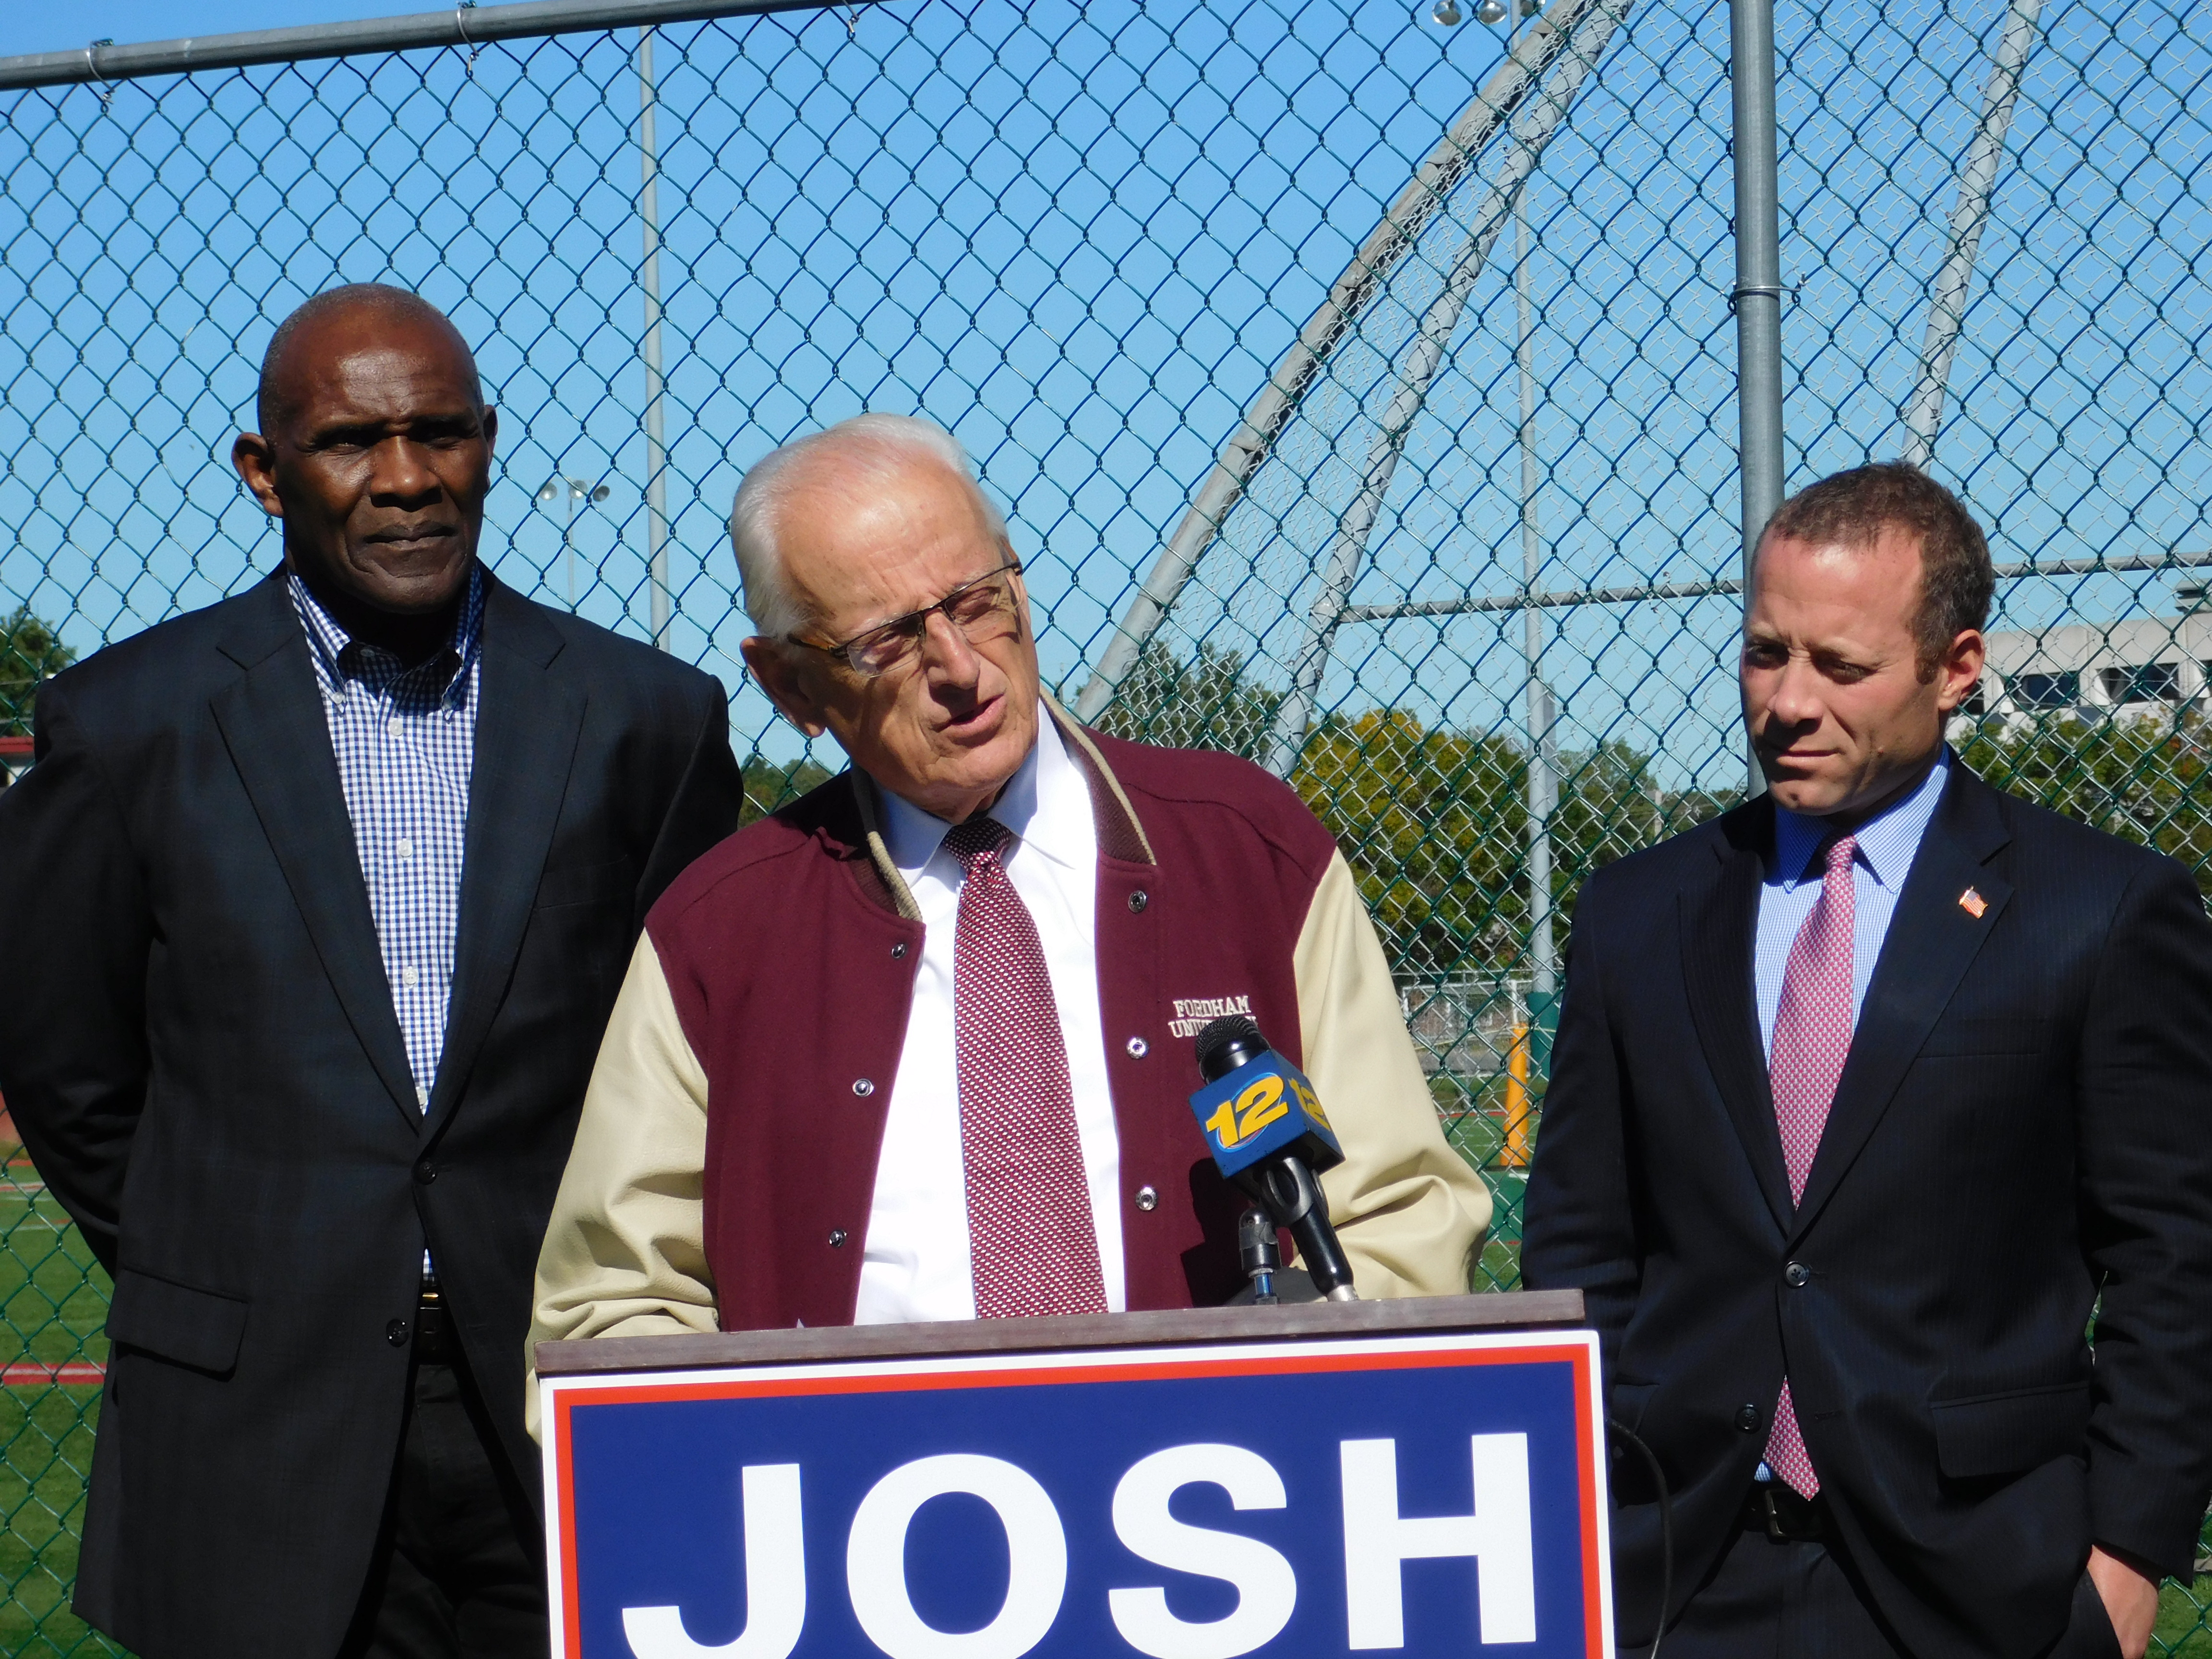 Josh Gottheimer (right) with Bill Pascrell and former football player Harry Carson. Gottheimer's statements on Garrett followed a press conference on concussion legislation efforts.